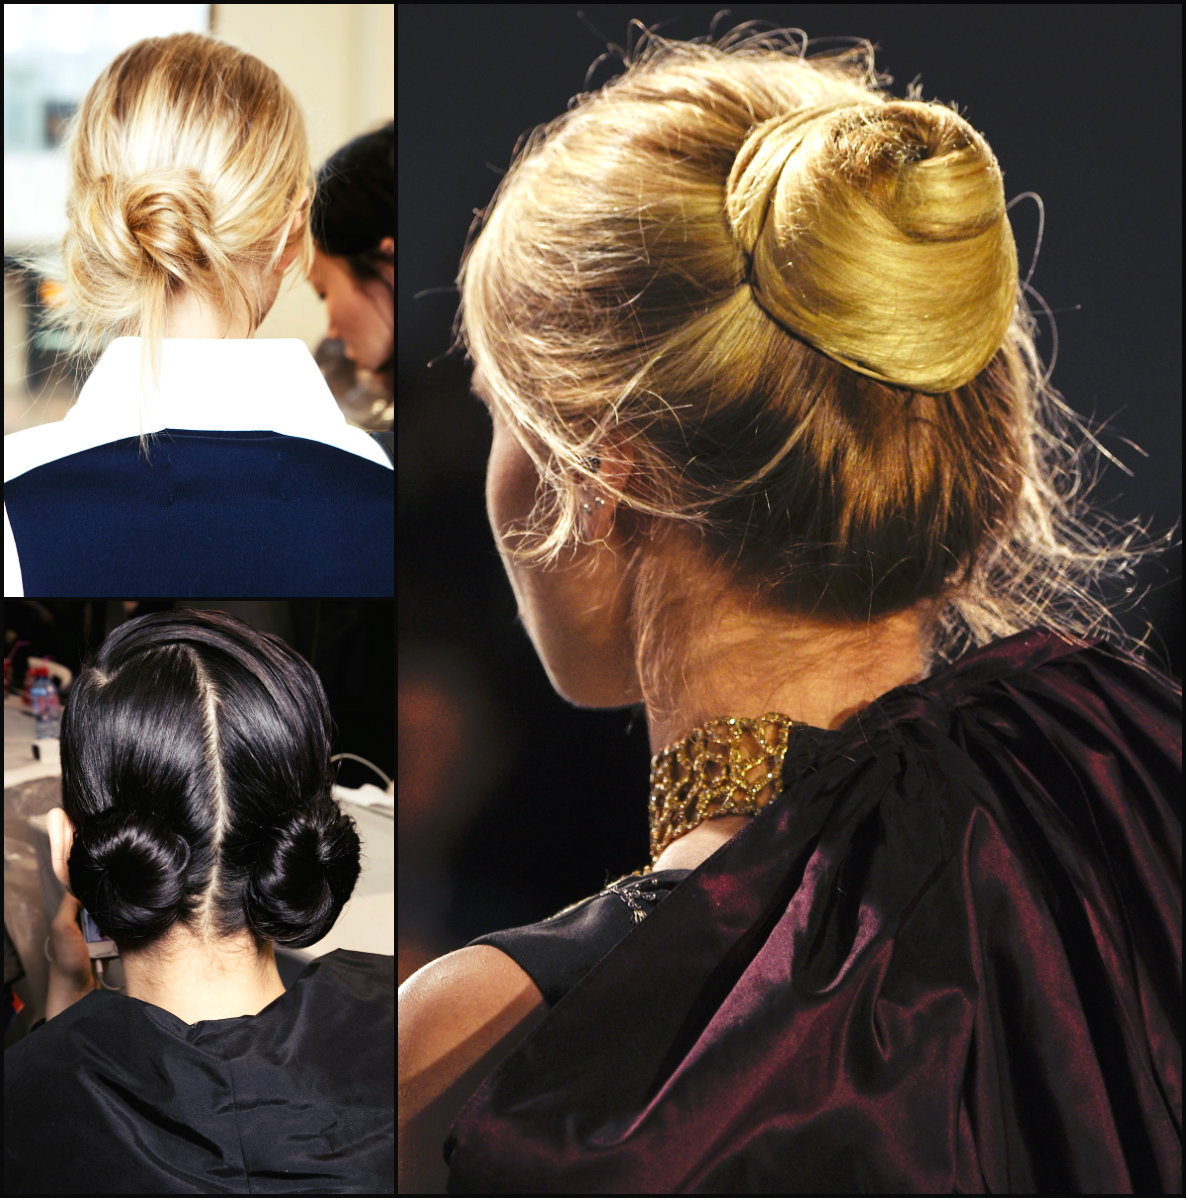 Best updo hairstyles 2016 Fall